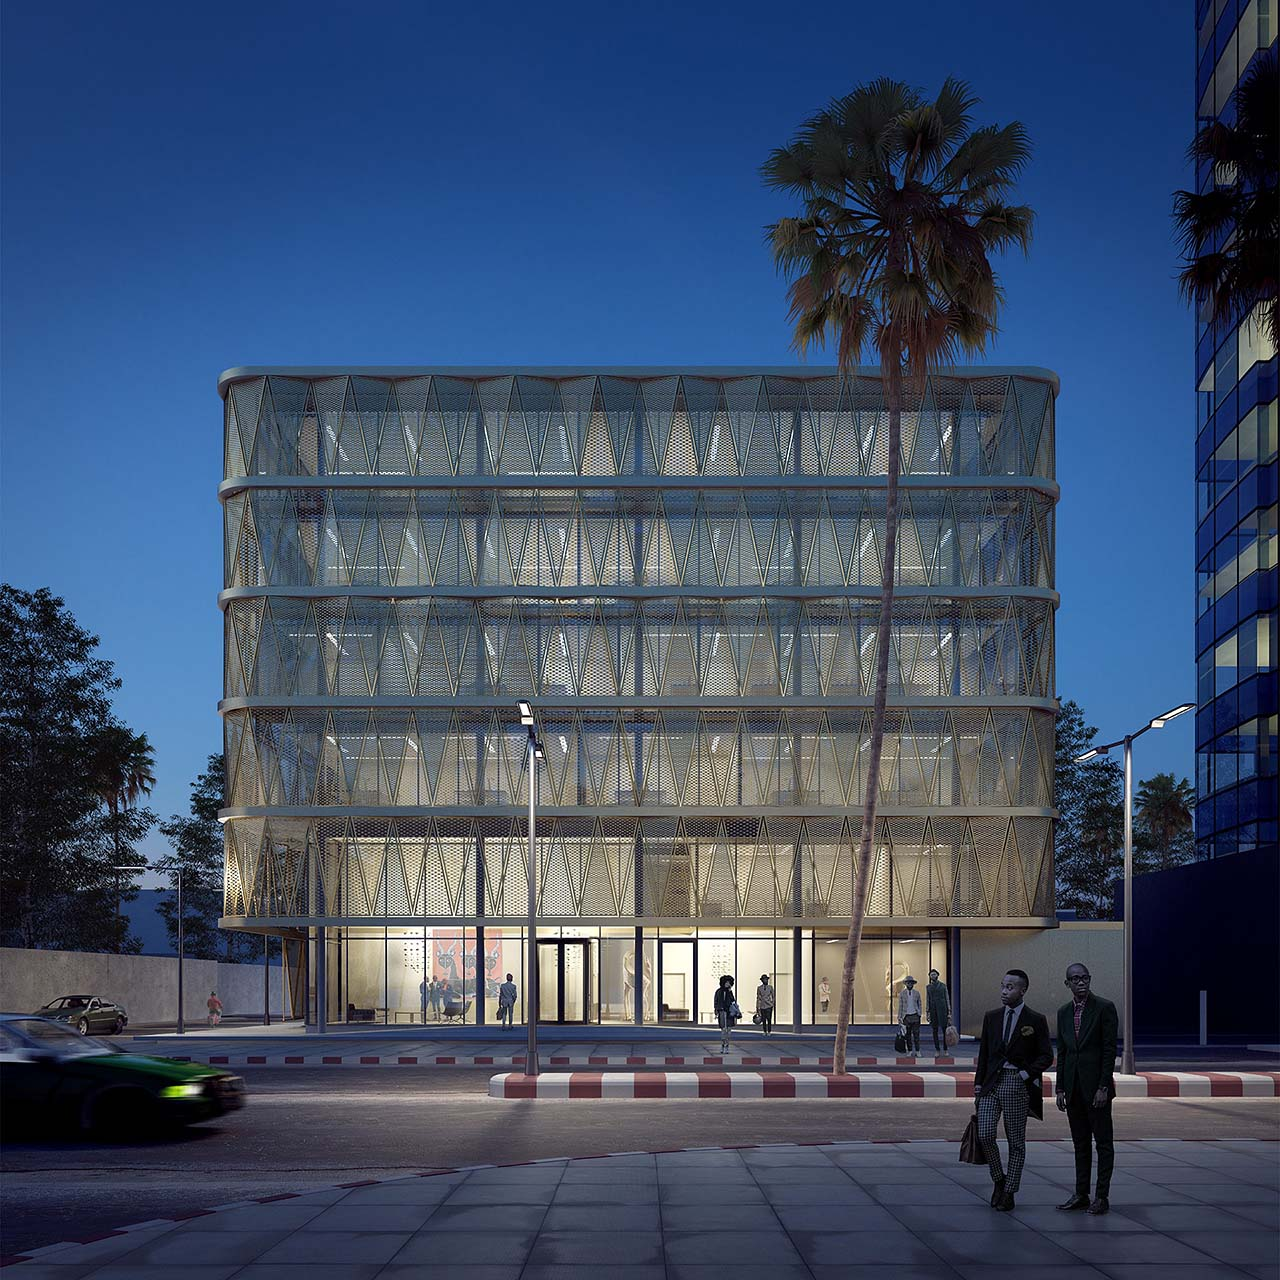 Night rendering of a gold building: palm trees, street lights iluminating a street in Congo